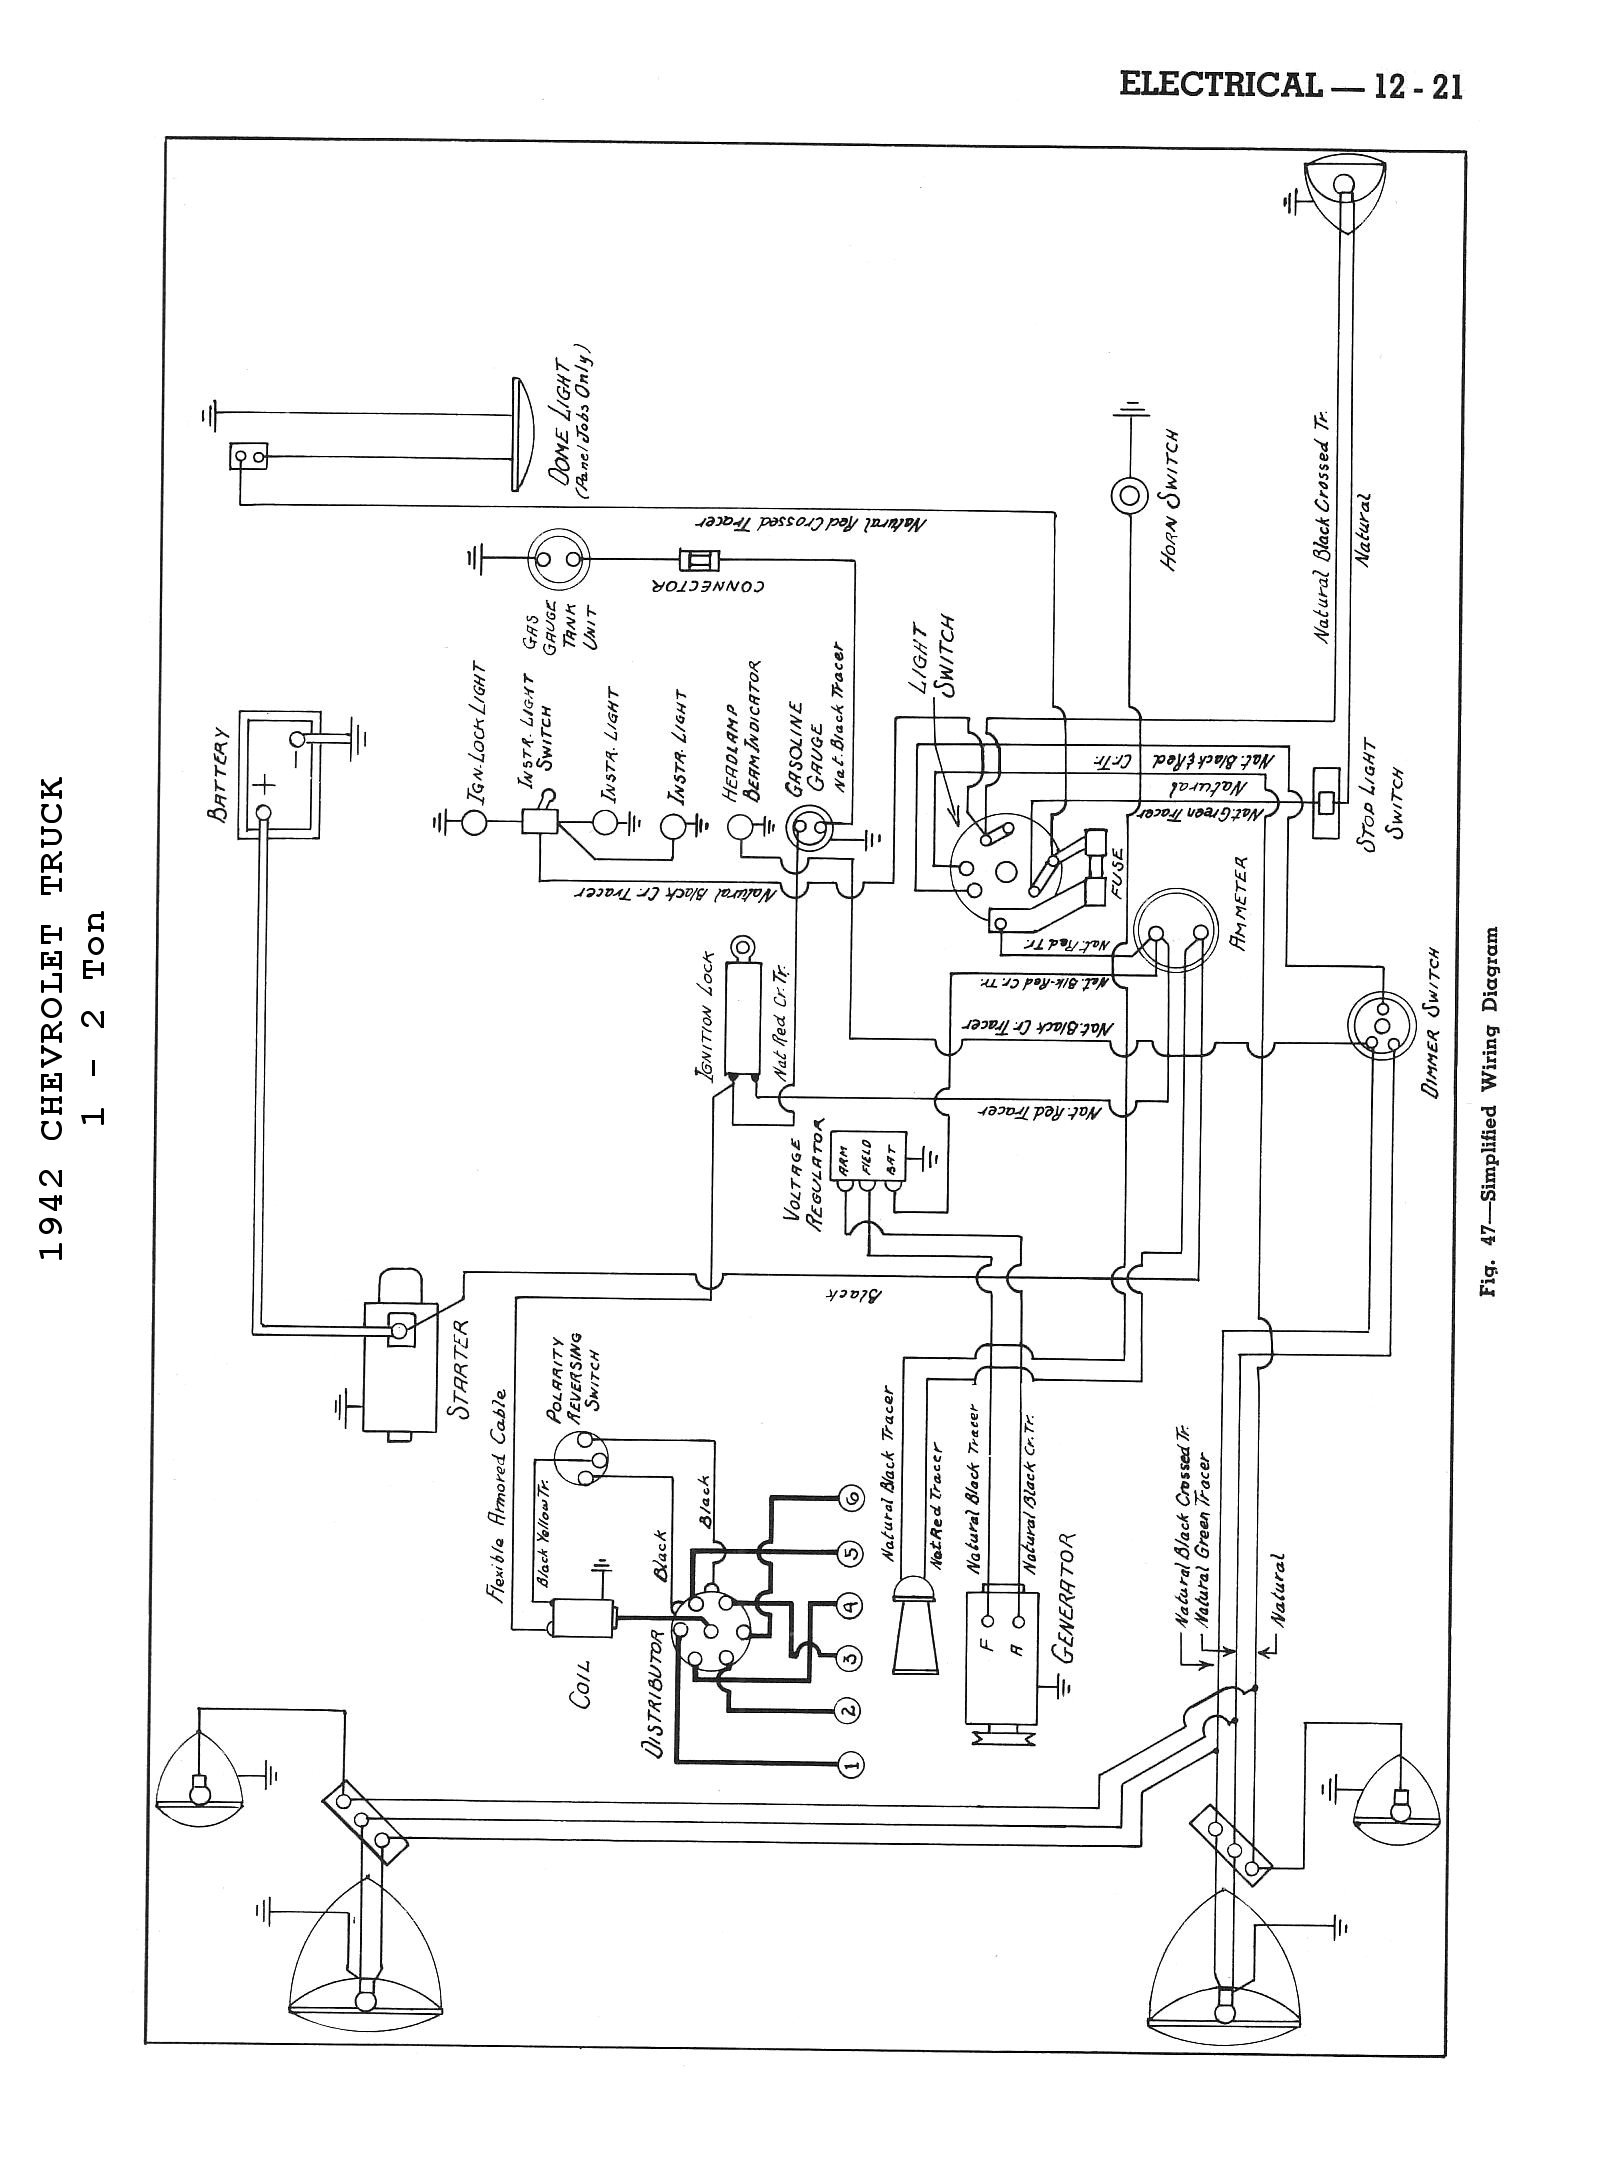 Wiring Diagram For A 1937 Chevy Truck Libraries Kia Sorento D4cb Engine Diagrams Diagrams1942 4x2